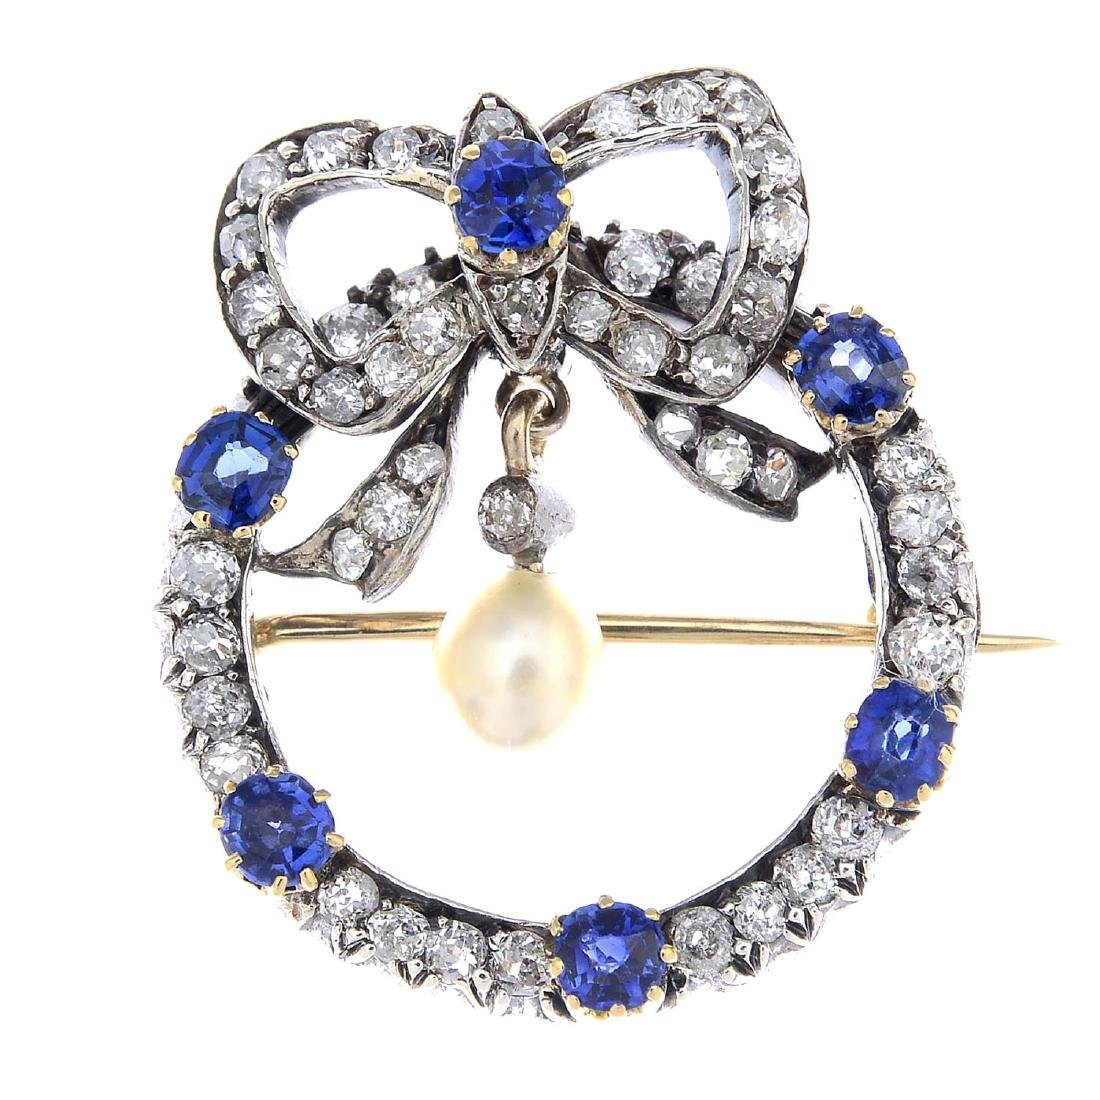 A late Victorian silver and gold, sapphire, diamond and